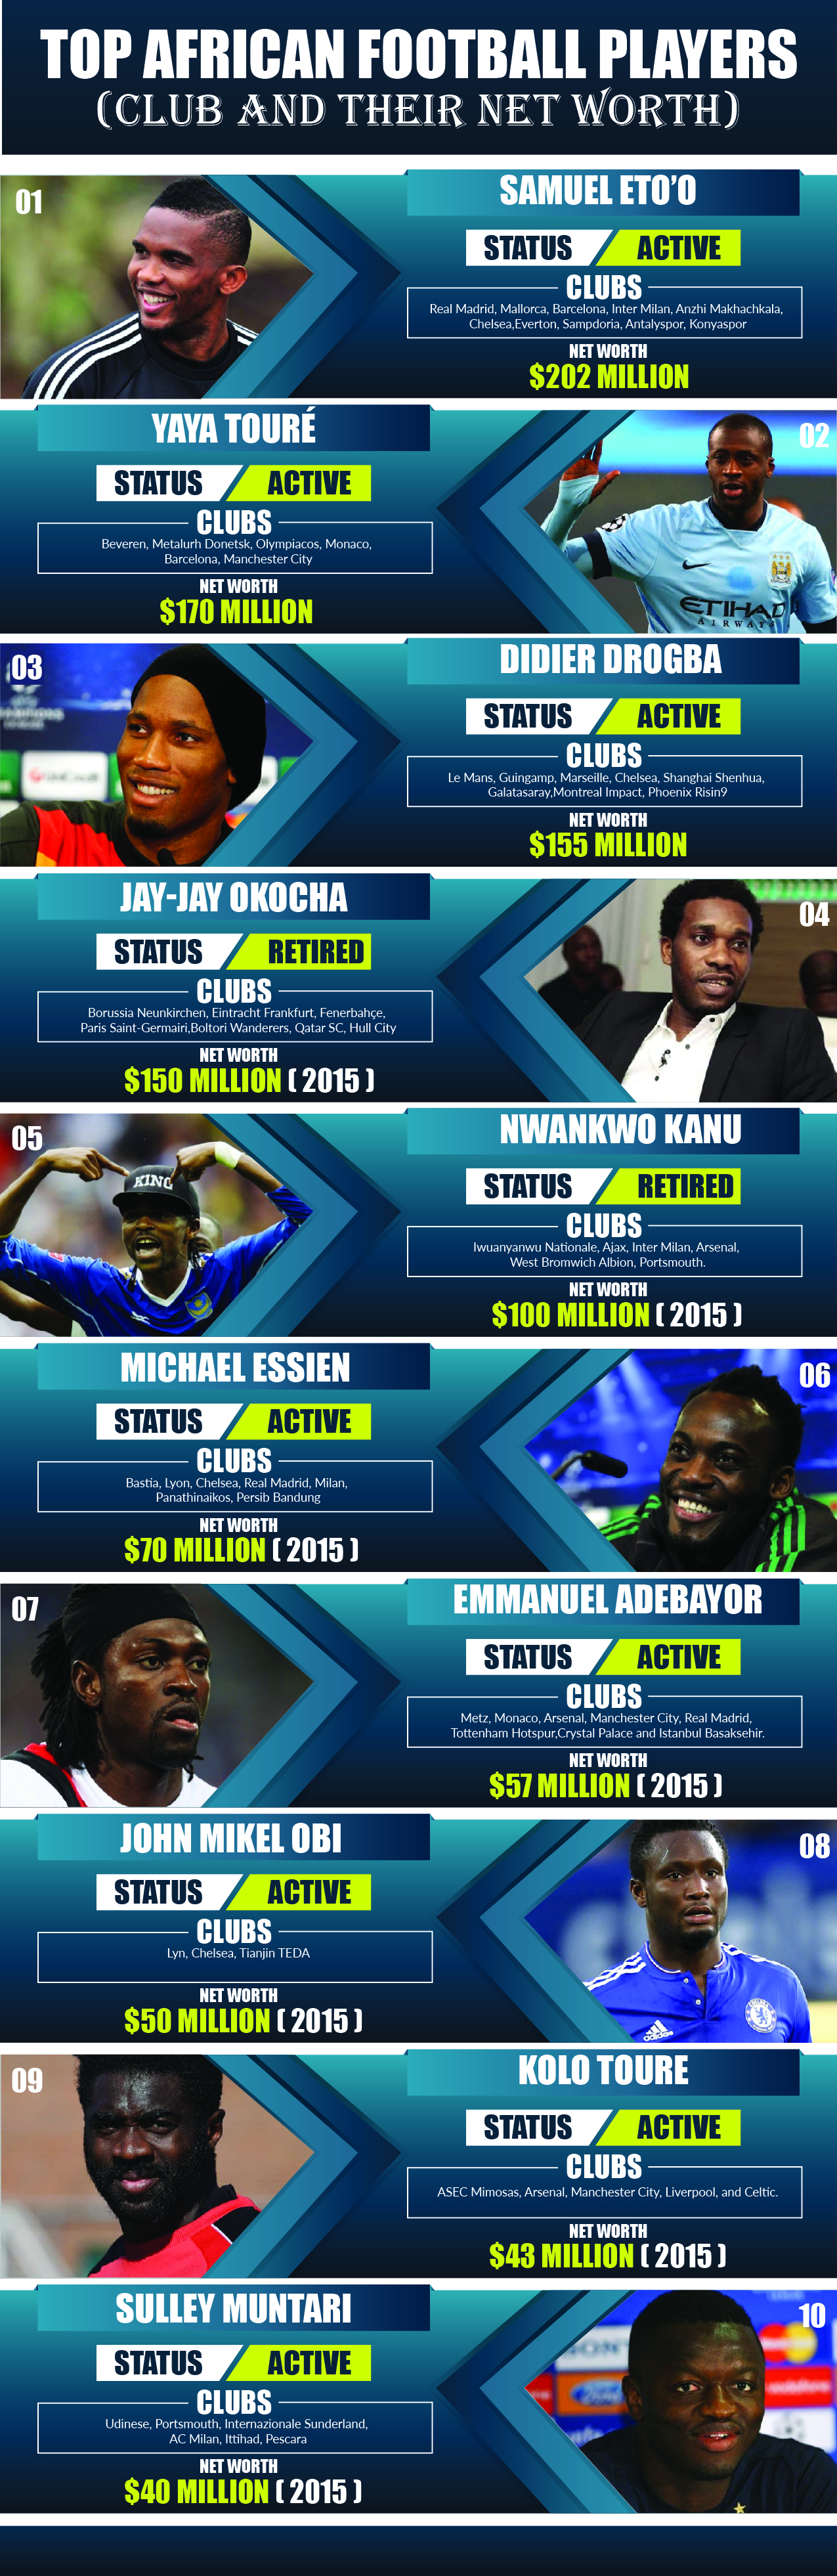 Top African football players